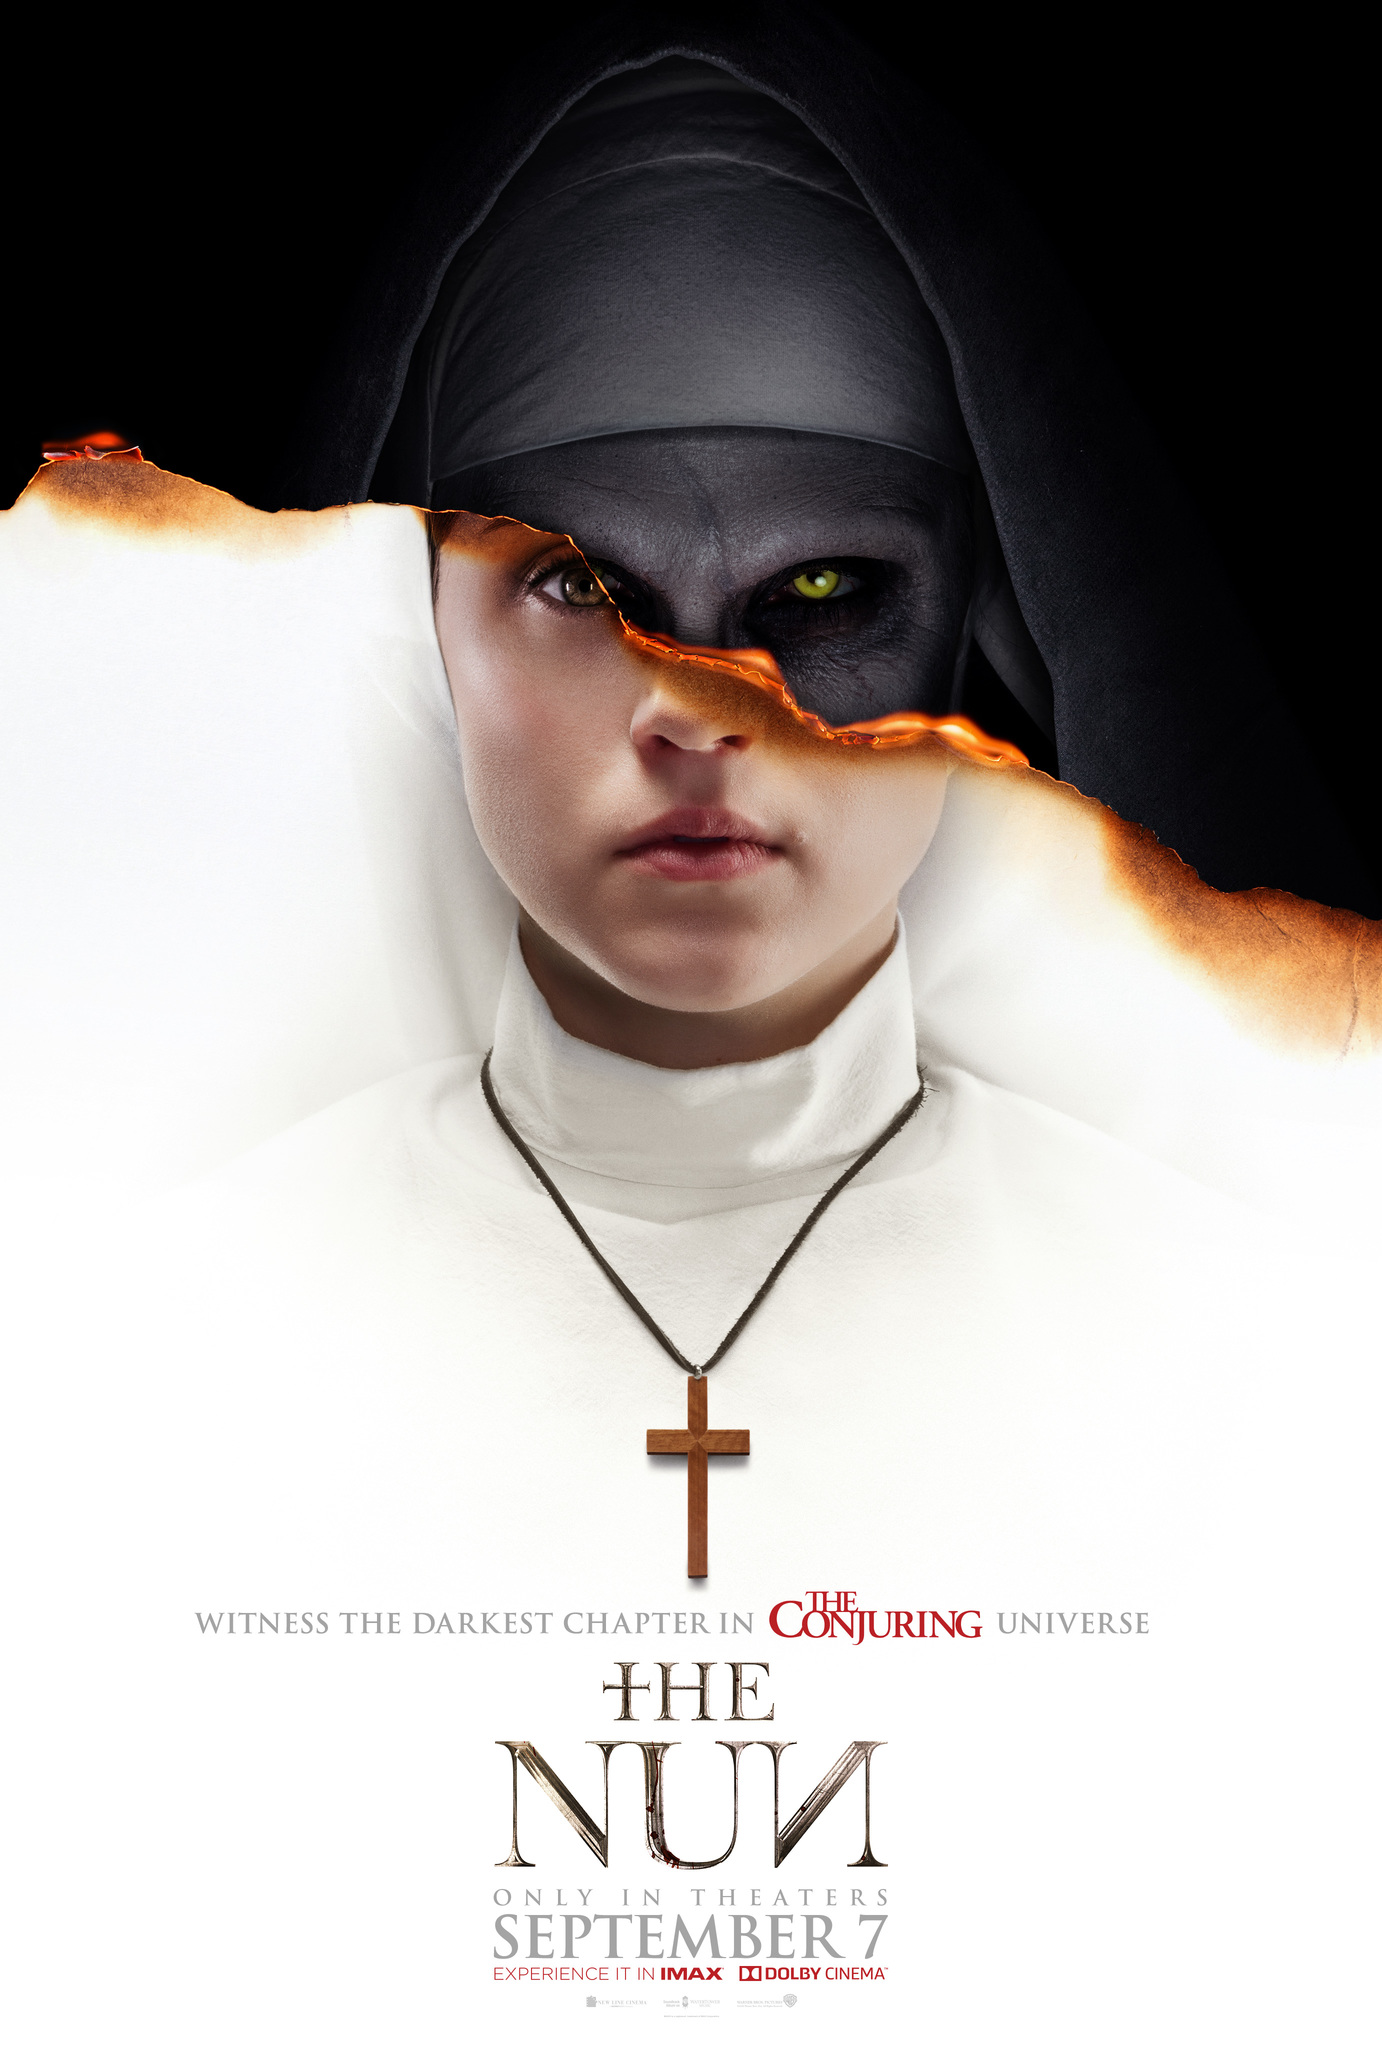 The film poster showing a young nun in white, but the image is torn across her face, revealing the creepy face of a nun in black behind her.